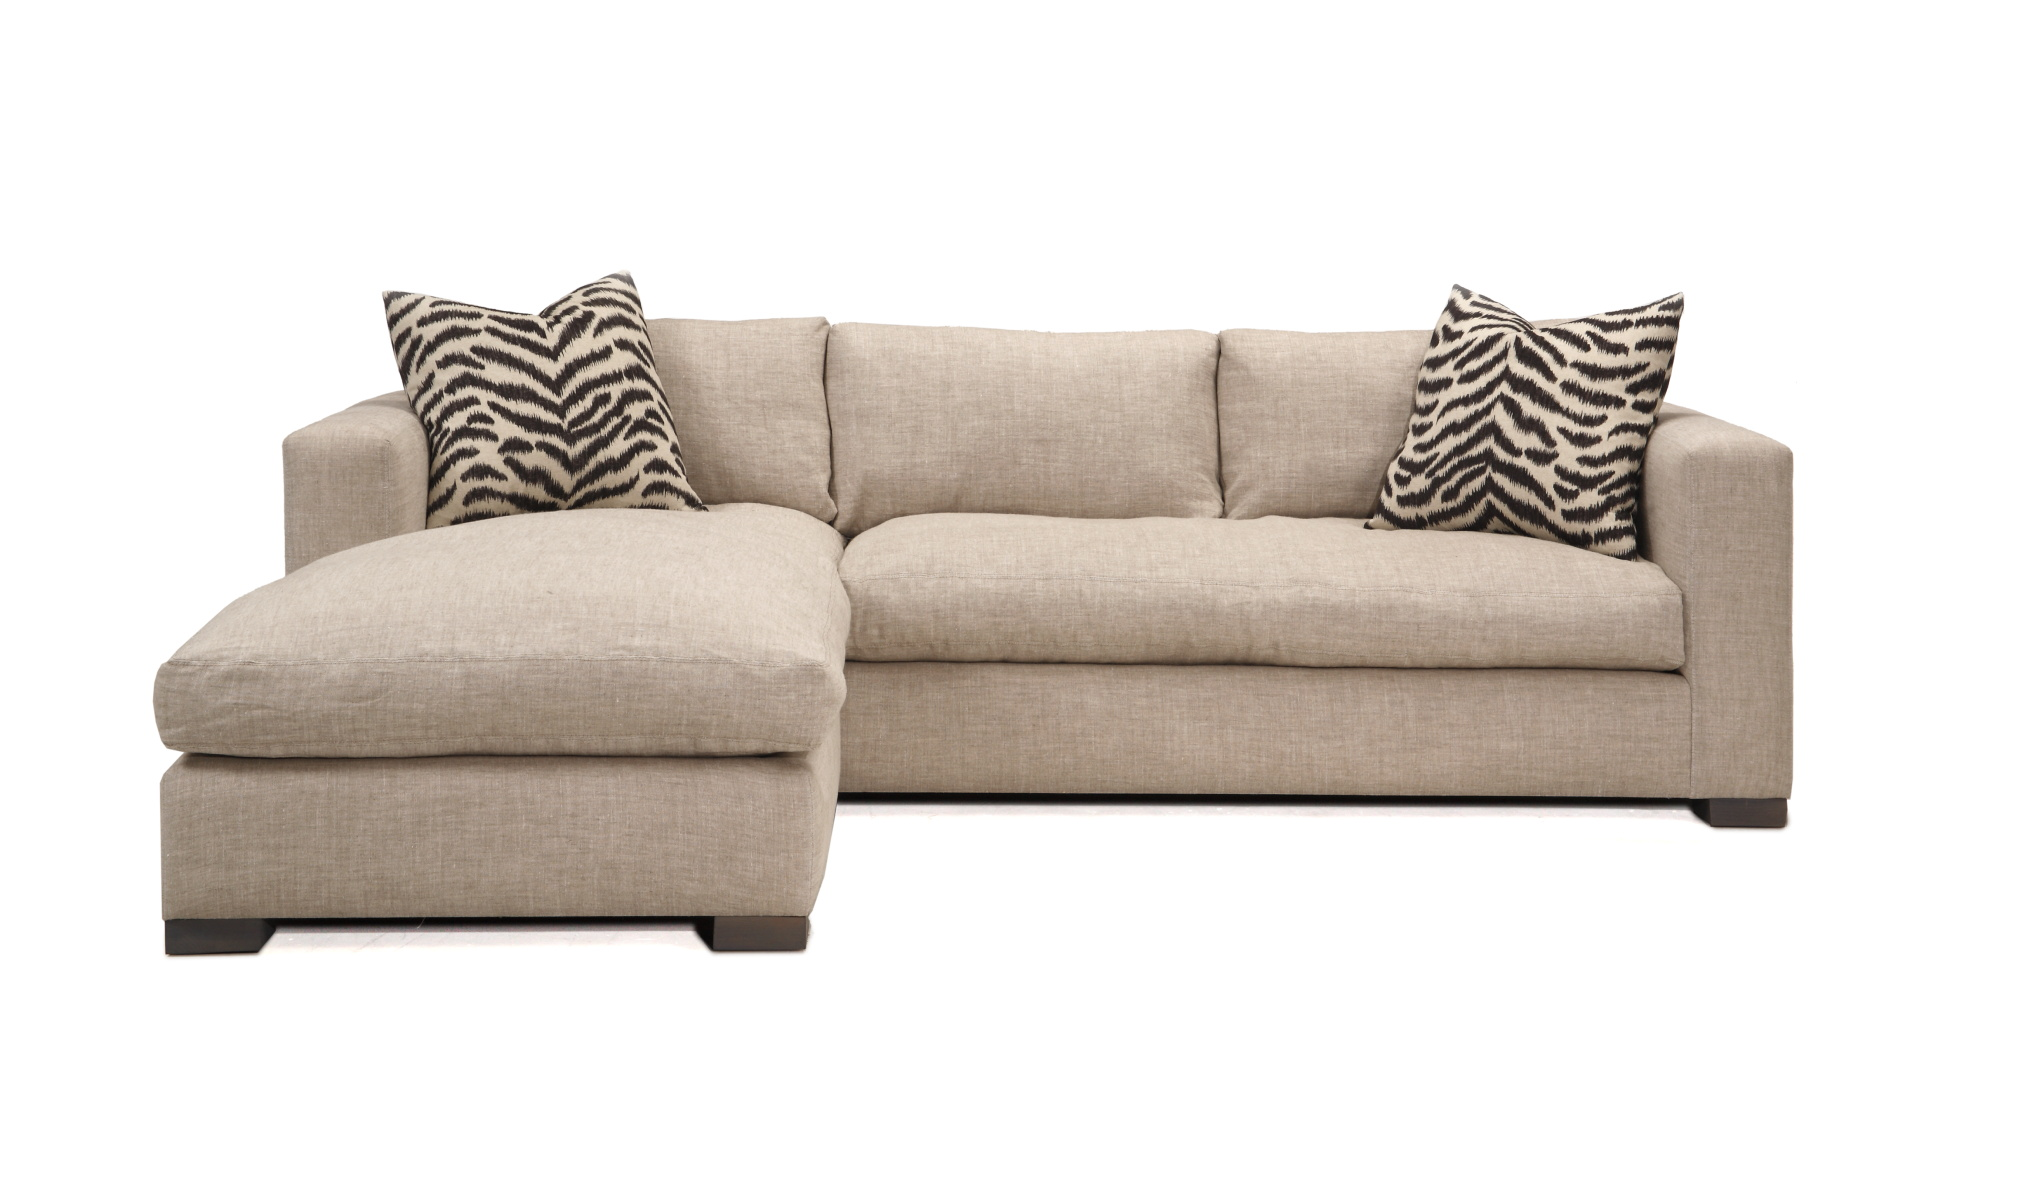 Charmant Morgan Sectional With Reversible Chaise/Ottoman